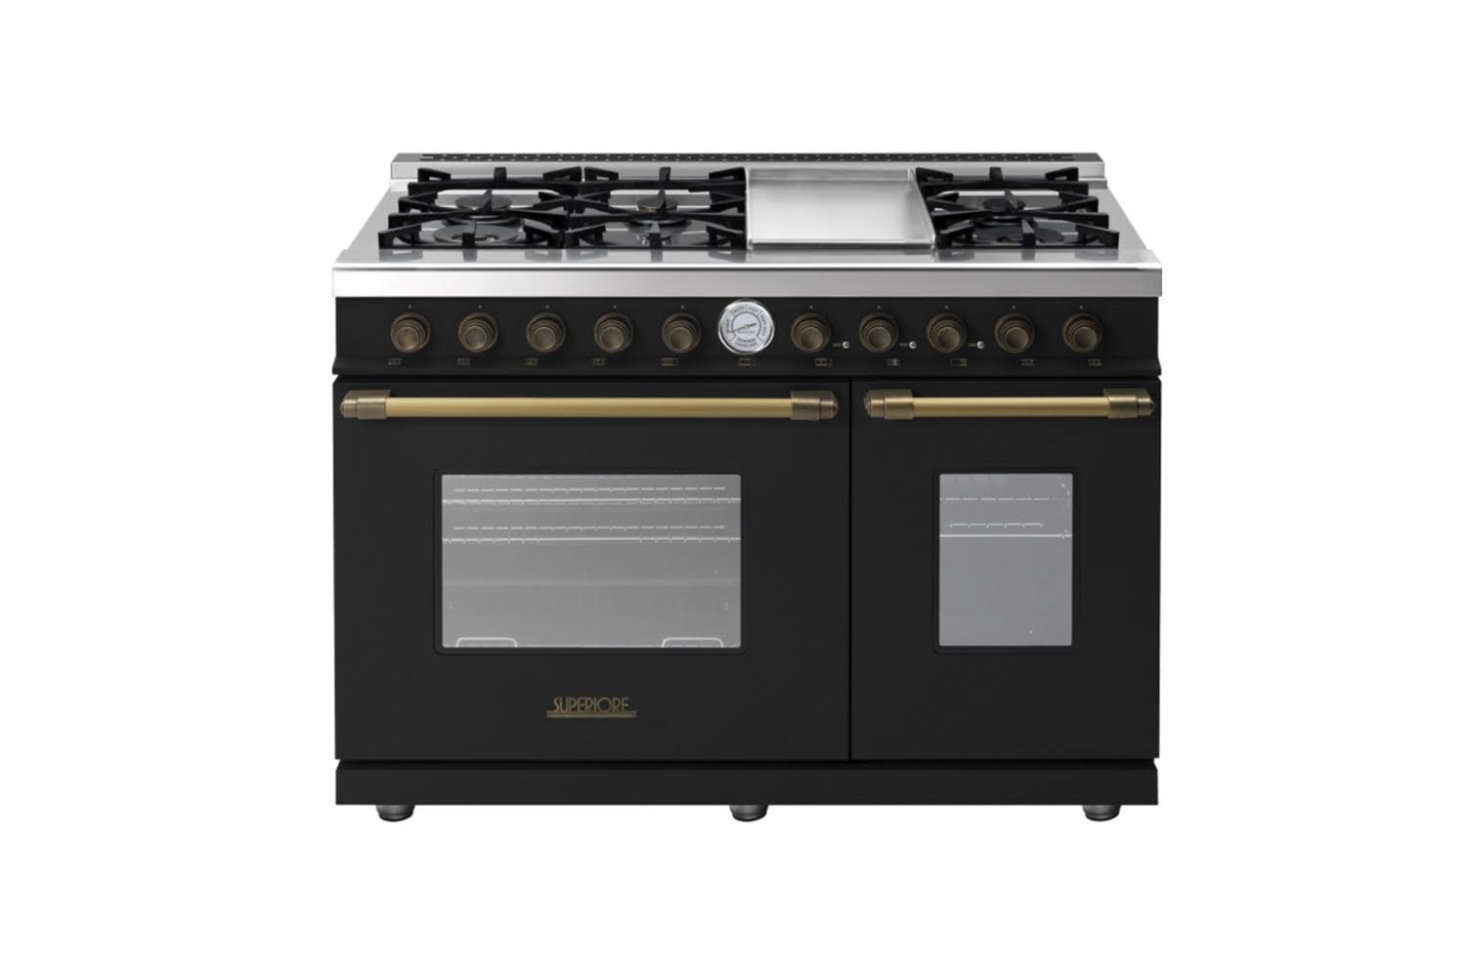 The Superiore Deco Series 48-Inch Range starts at $9,0 and is available in a choice of colors (black, brown, cream, or red) and accents (bronze, chrome, or gold) from AJ Madison.